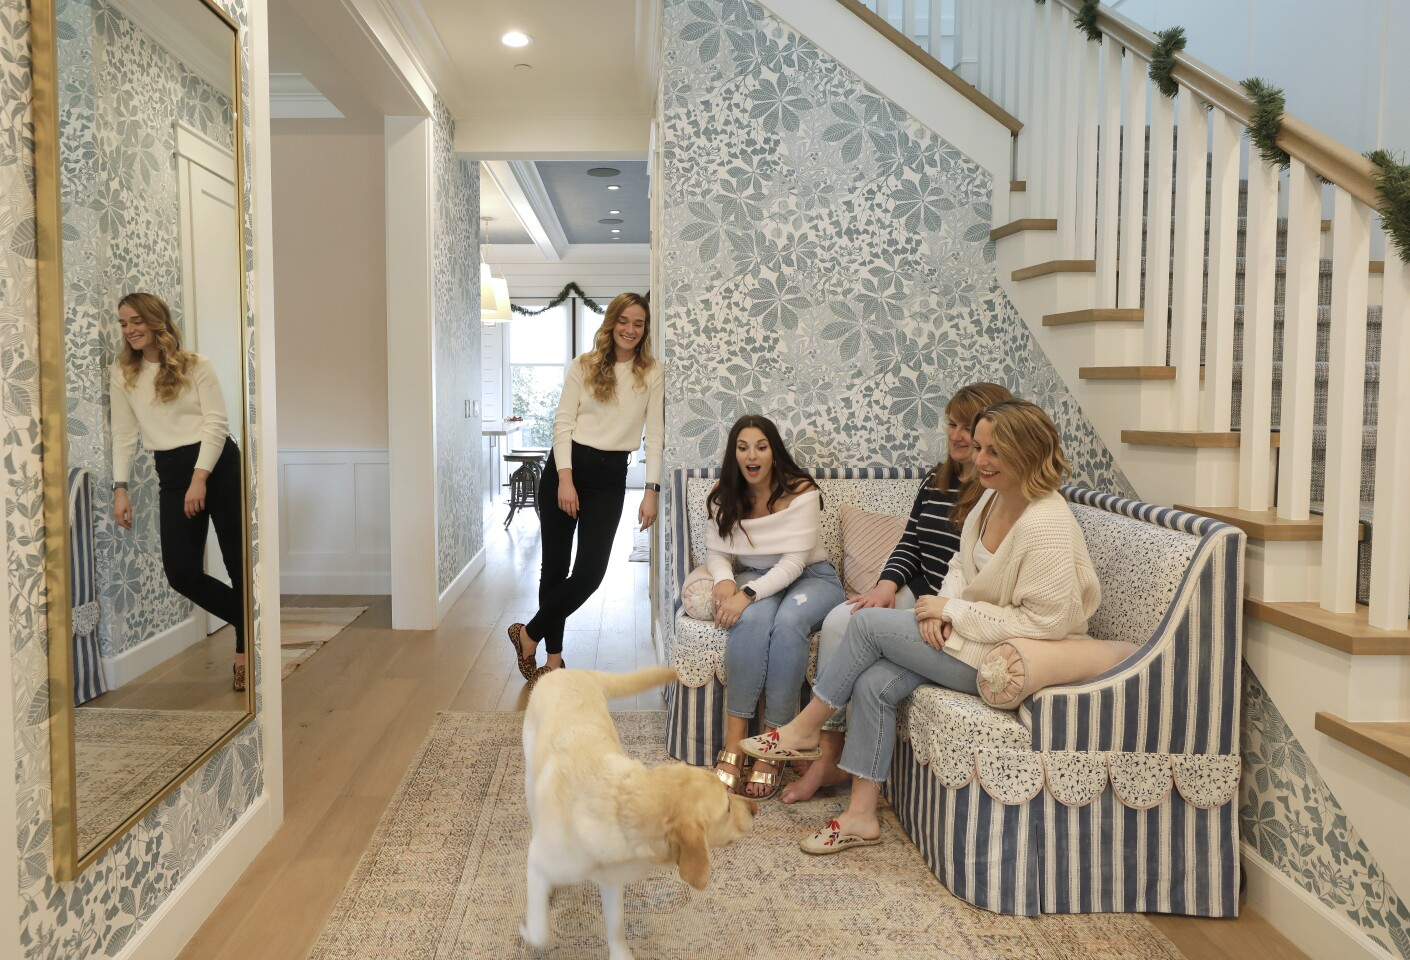 """Victoria Aveyard, second from left, shares her house with her dog Indy; roommates Tori Ahl, far right; Morgan Bowser, second from right. Jen Rohrs, left, is a former roommate. The author of the popular young adult fantasy series, """"Red Queen,"""" bought her """"modern farmhouse"""" in 2017."""